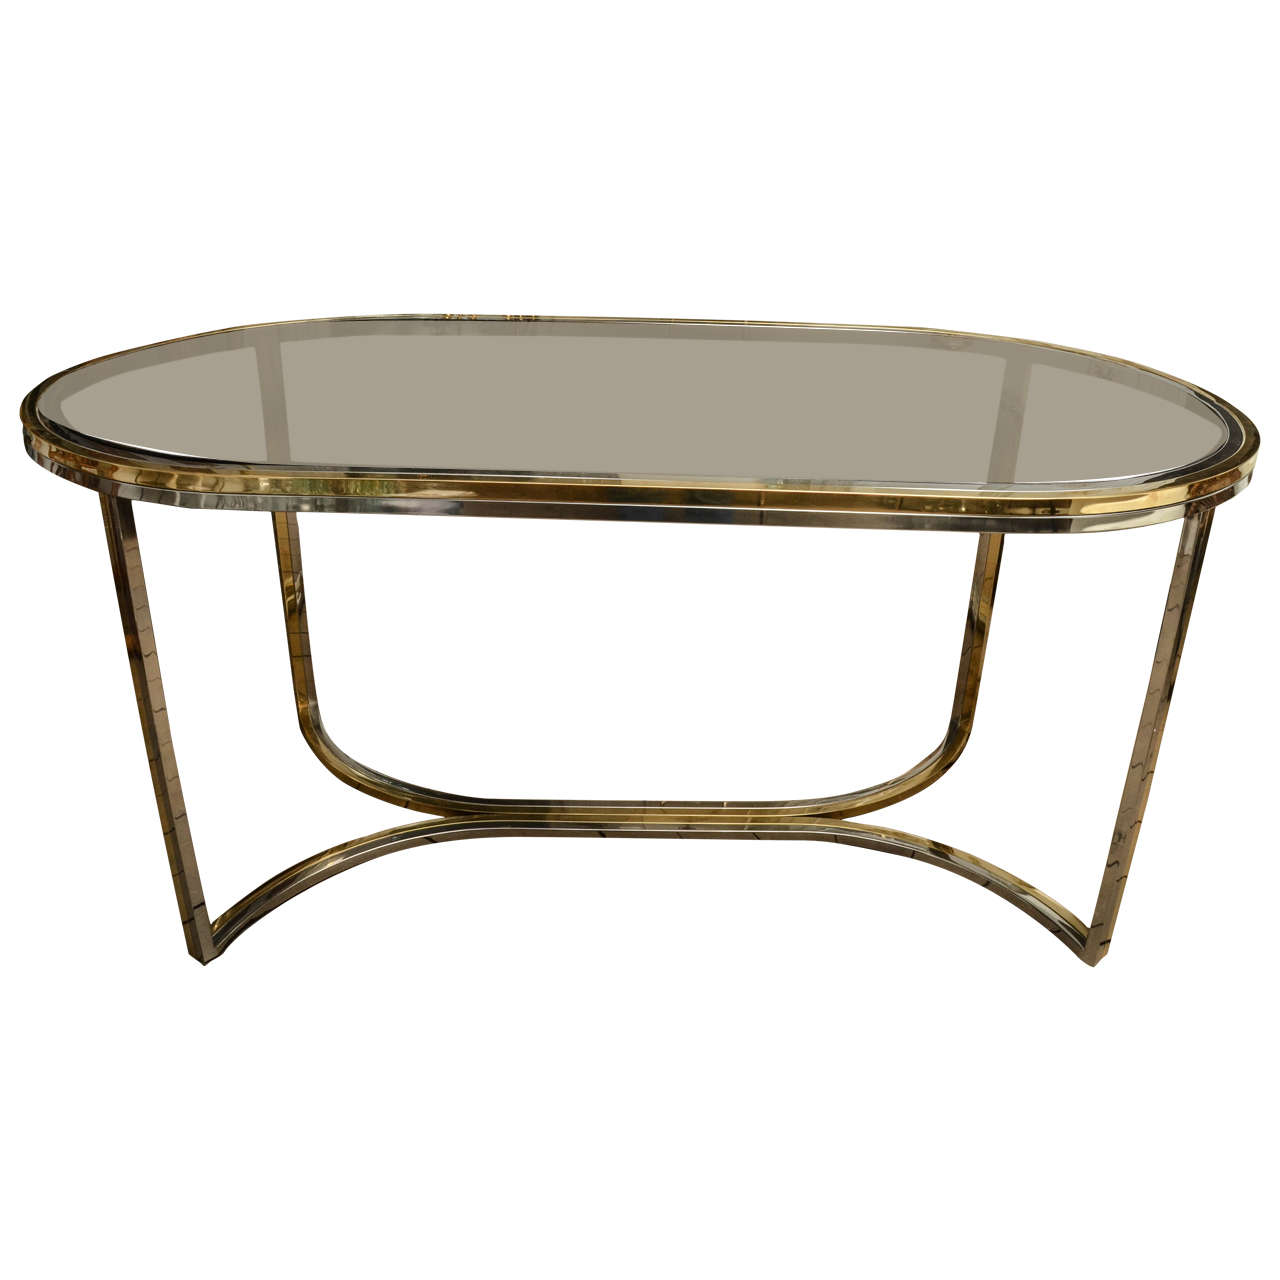 Chrome And Brass Oval Dining Table With Smoked Glass Top At 1stdibs